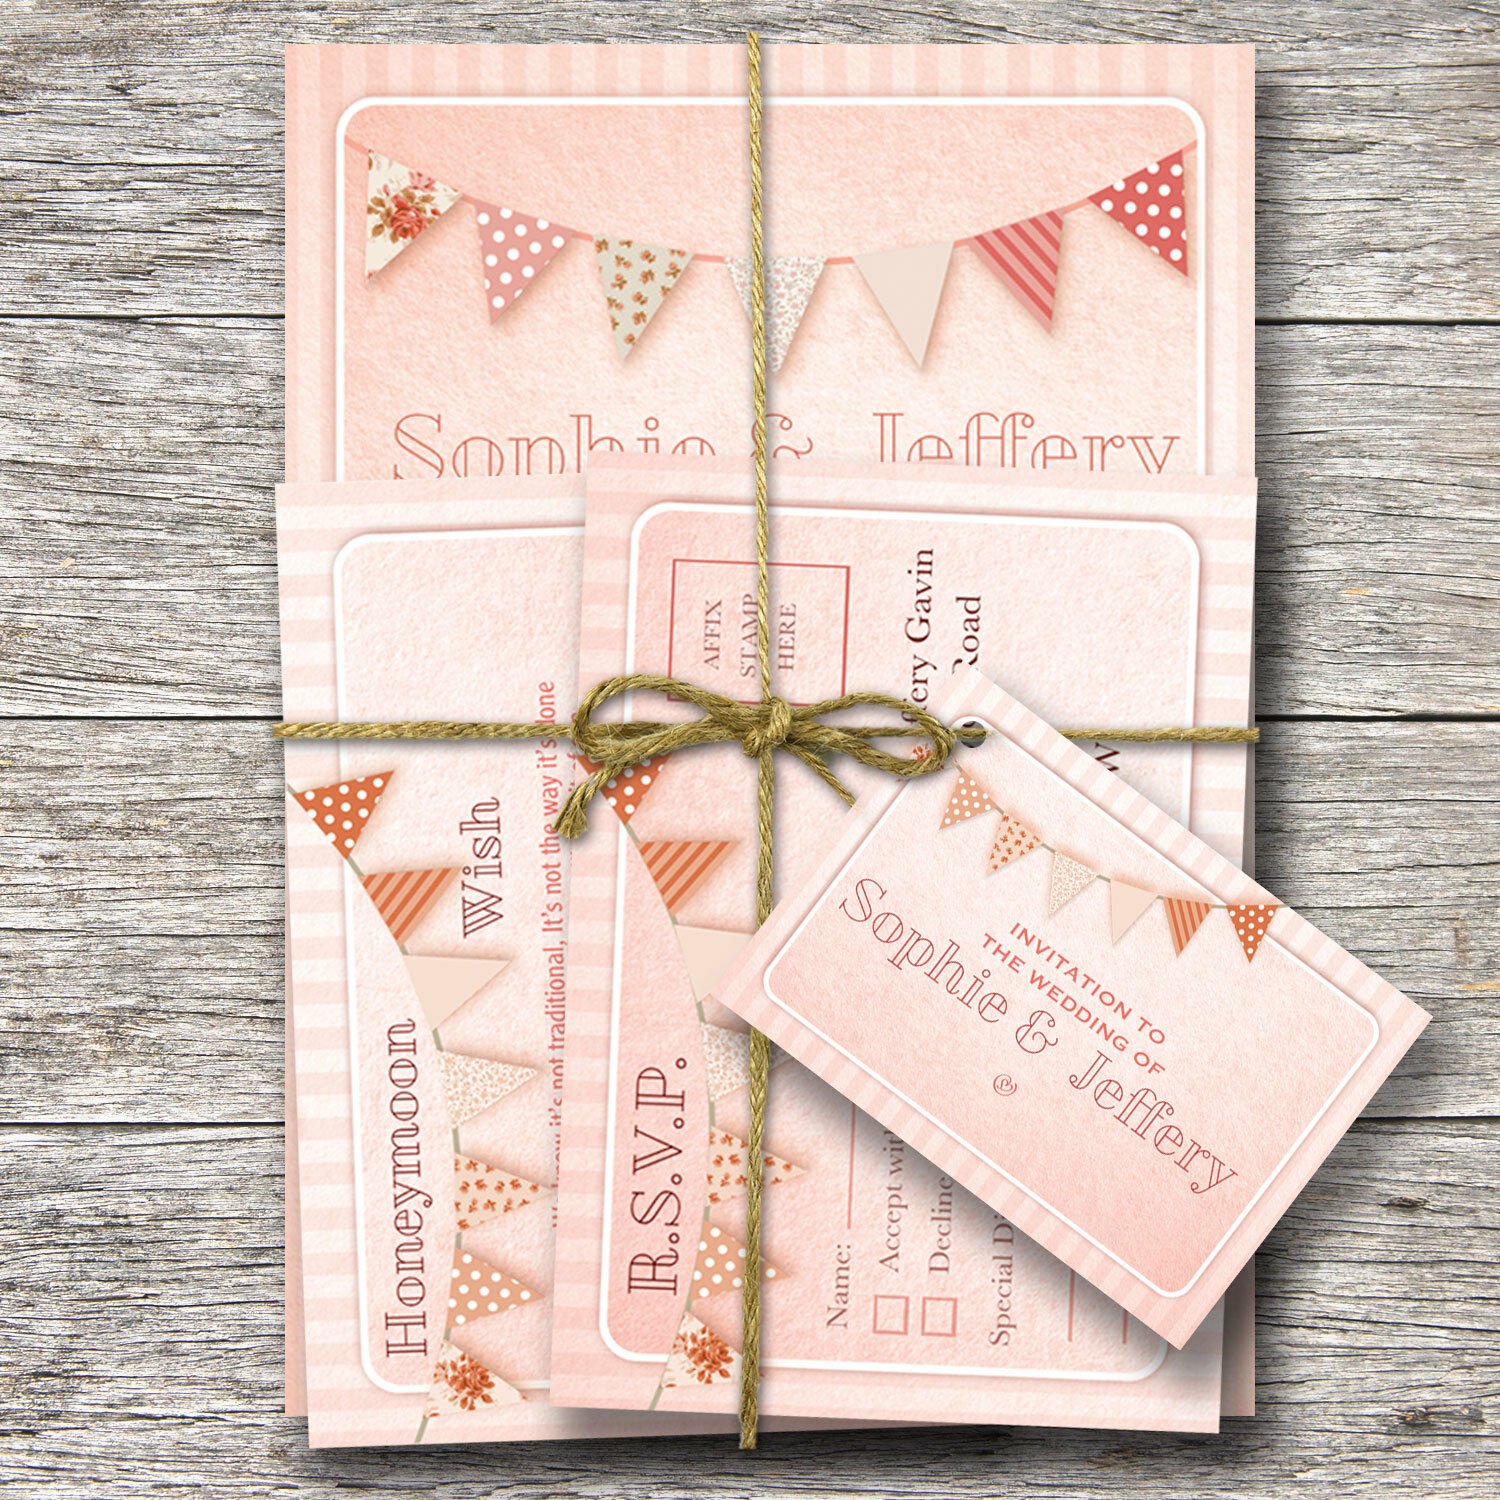 Personalised Wedding Day Evening Invitations inc FREE envs - Other items